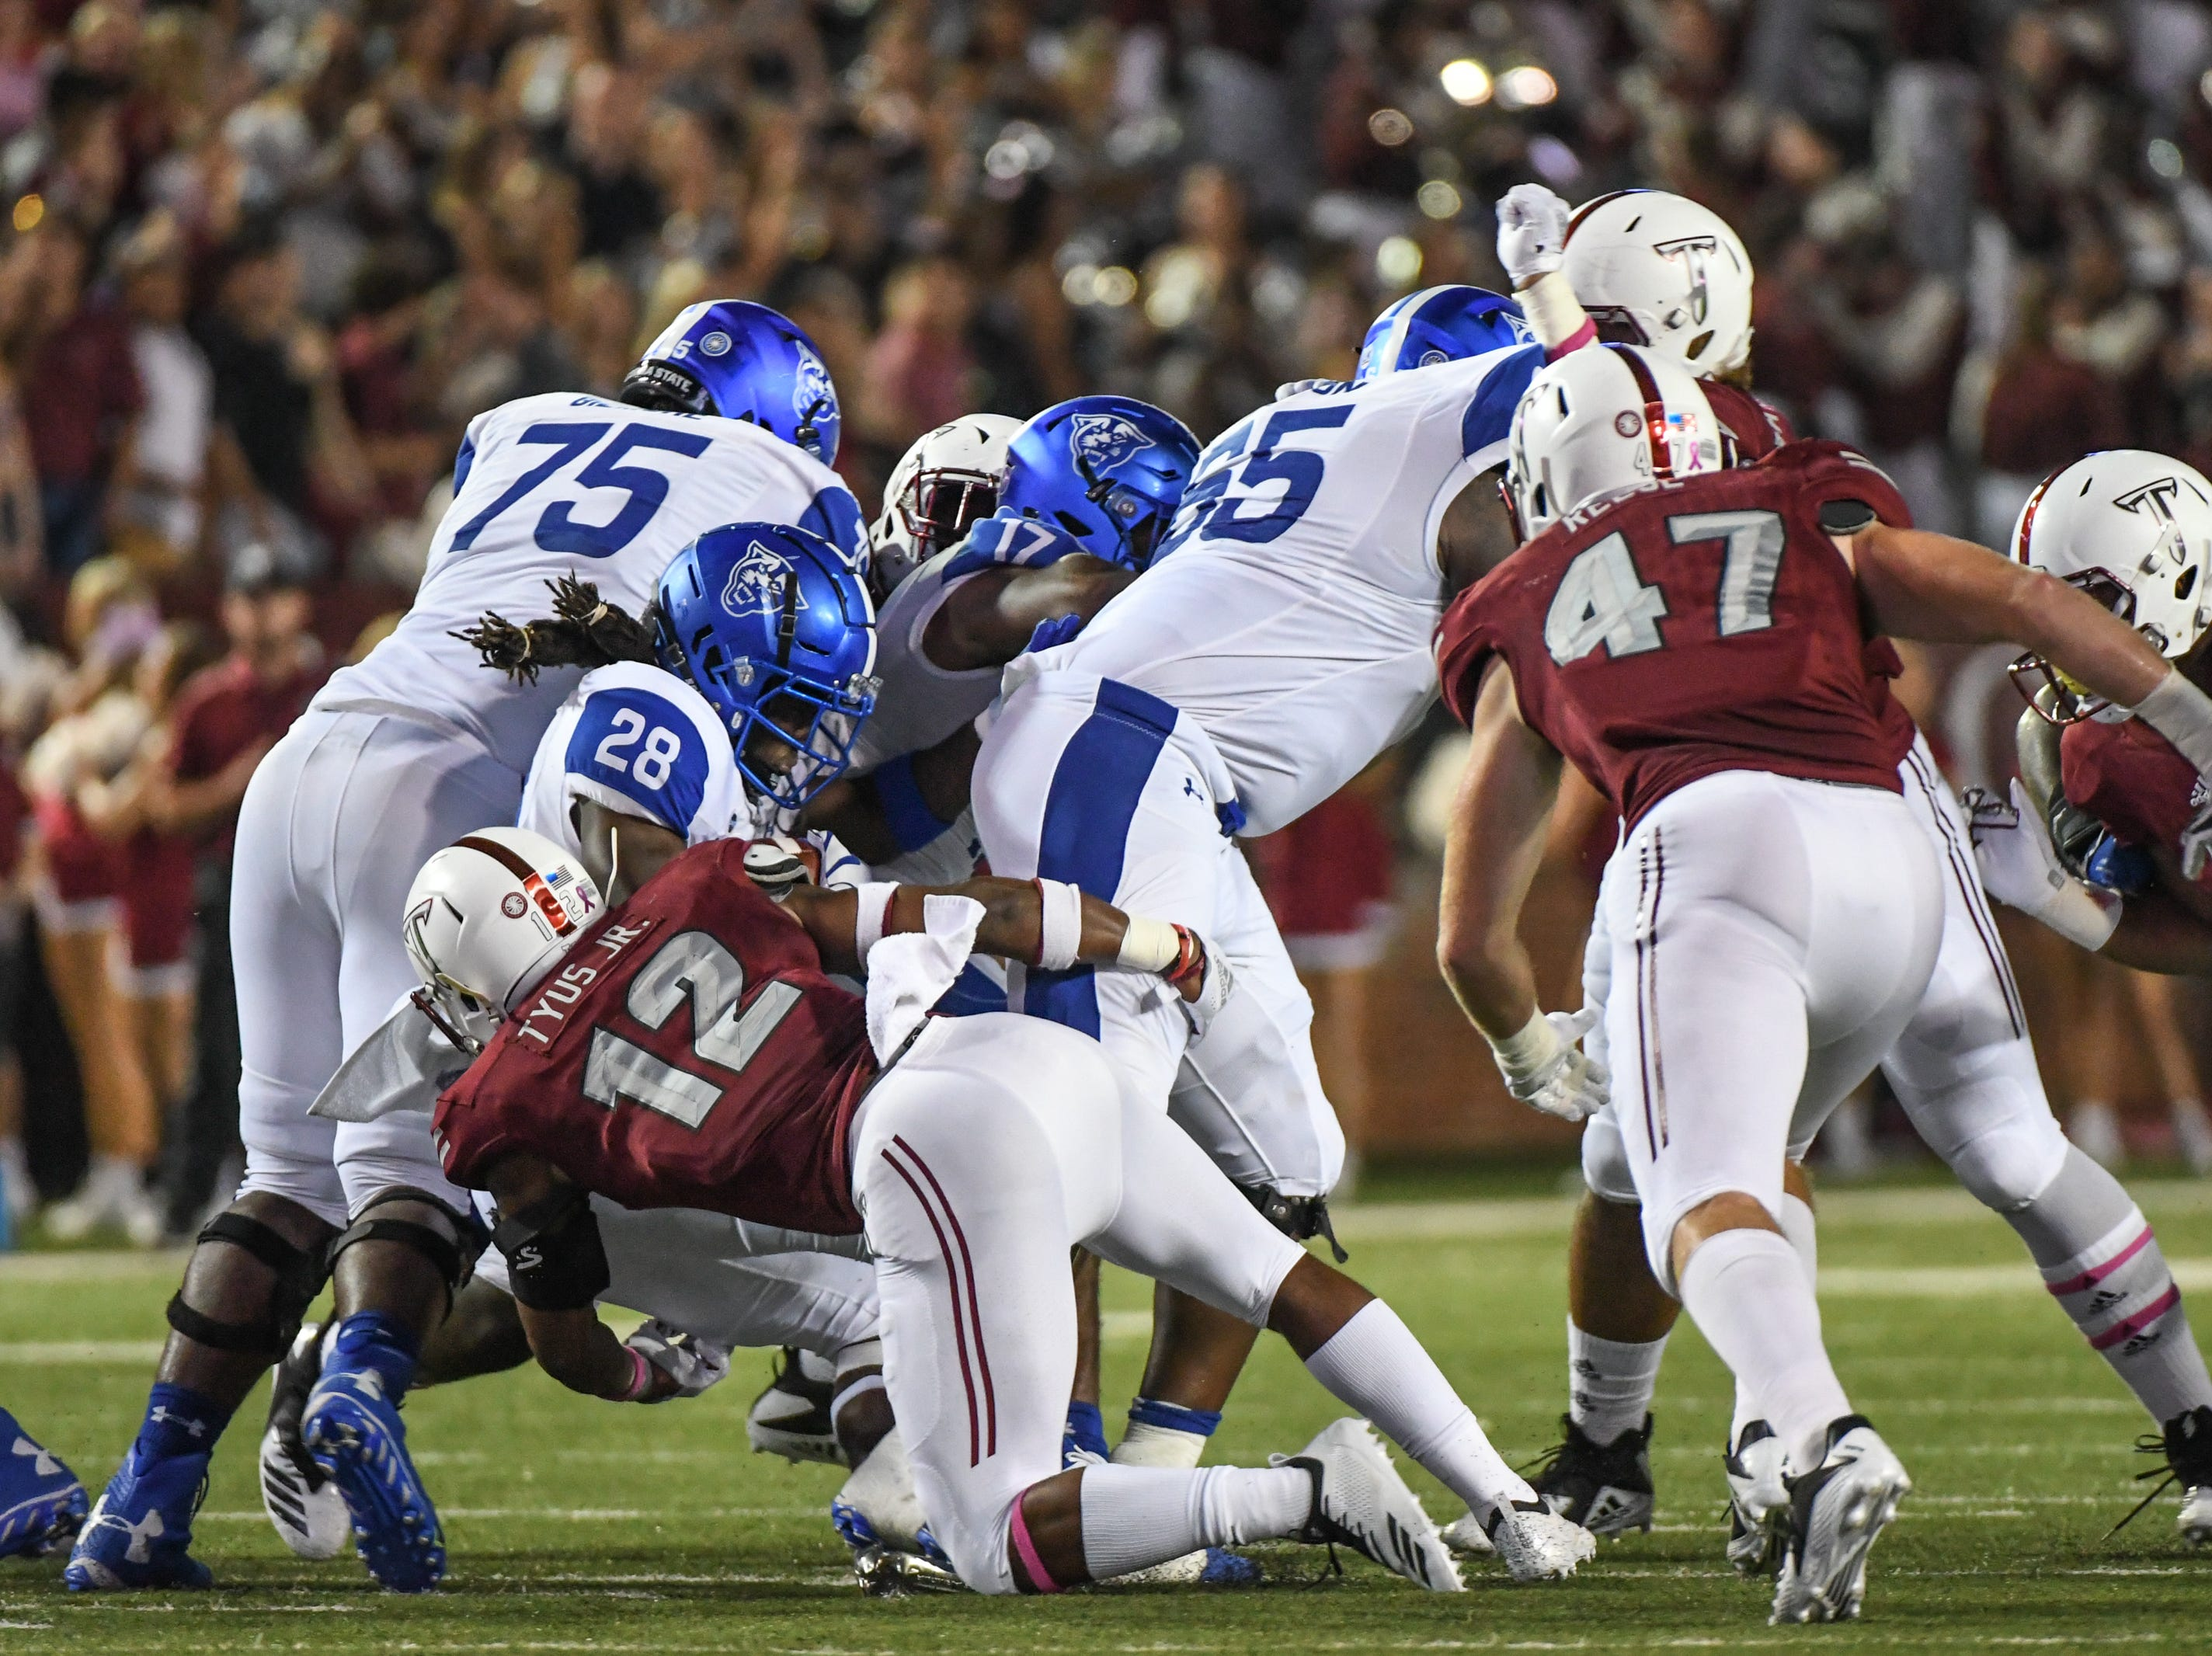 Georgia State Panthers running back Seth Paige (28) is tackled by Troy Trojans safety Melvin Tyus (12)  at Veteran's Memorial Stadium in Troy, Ala., on Thursday, Oct. 4, 2018. (Chip Dillard/Special to the Montgomery Advertiser)